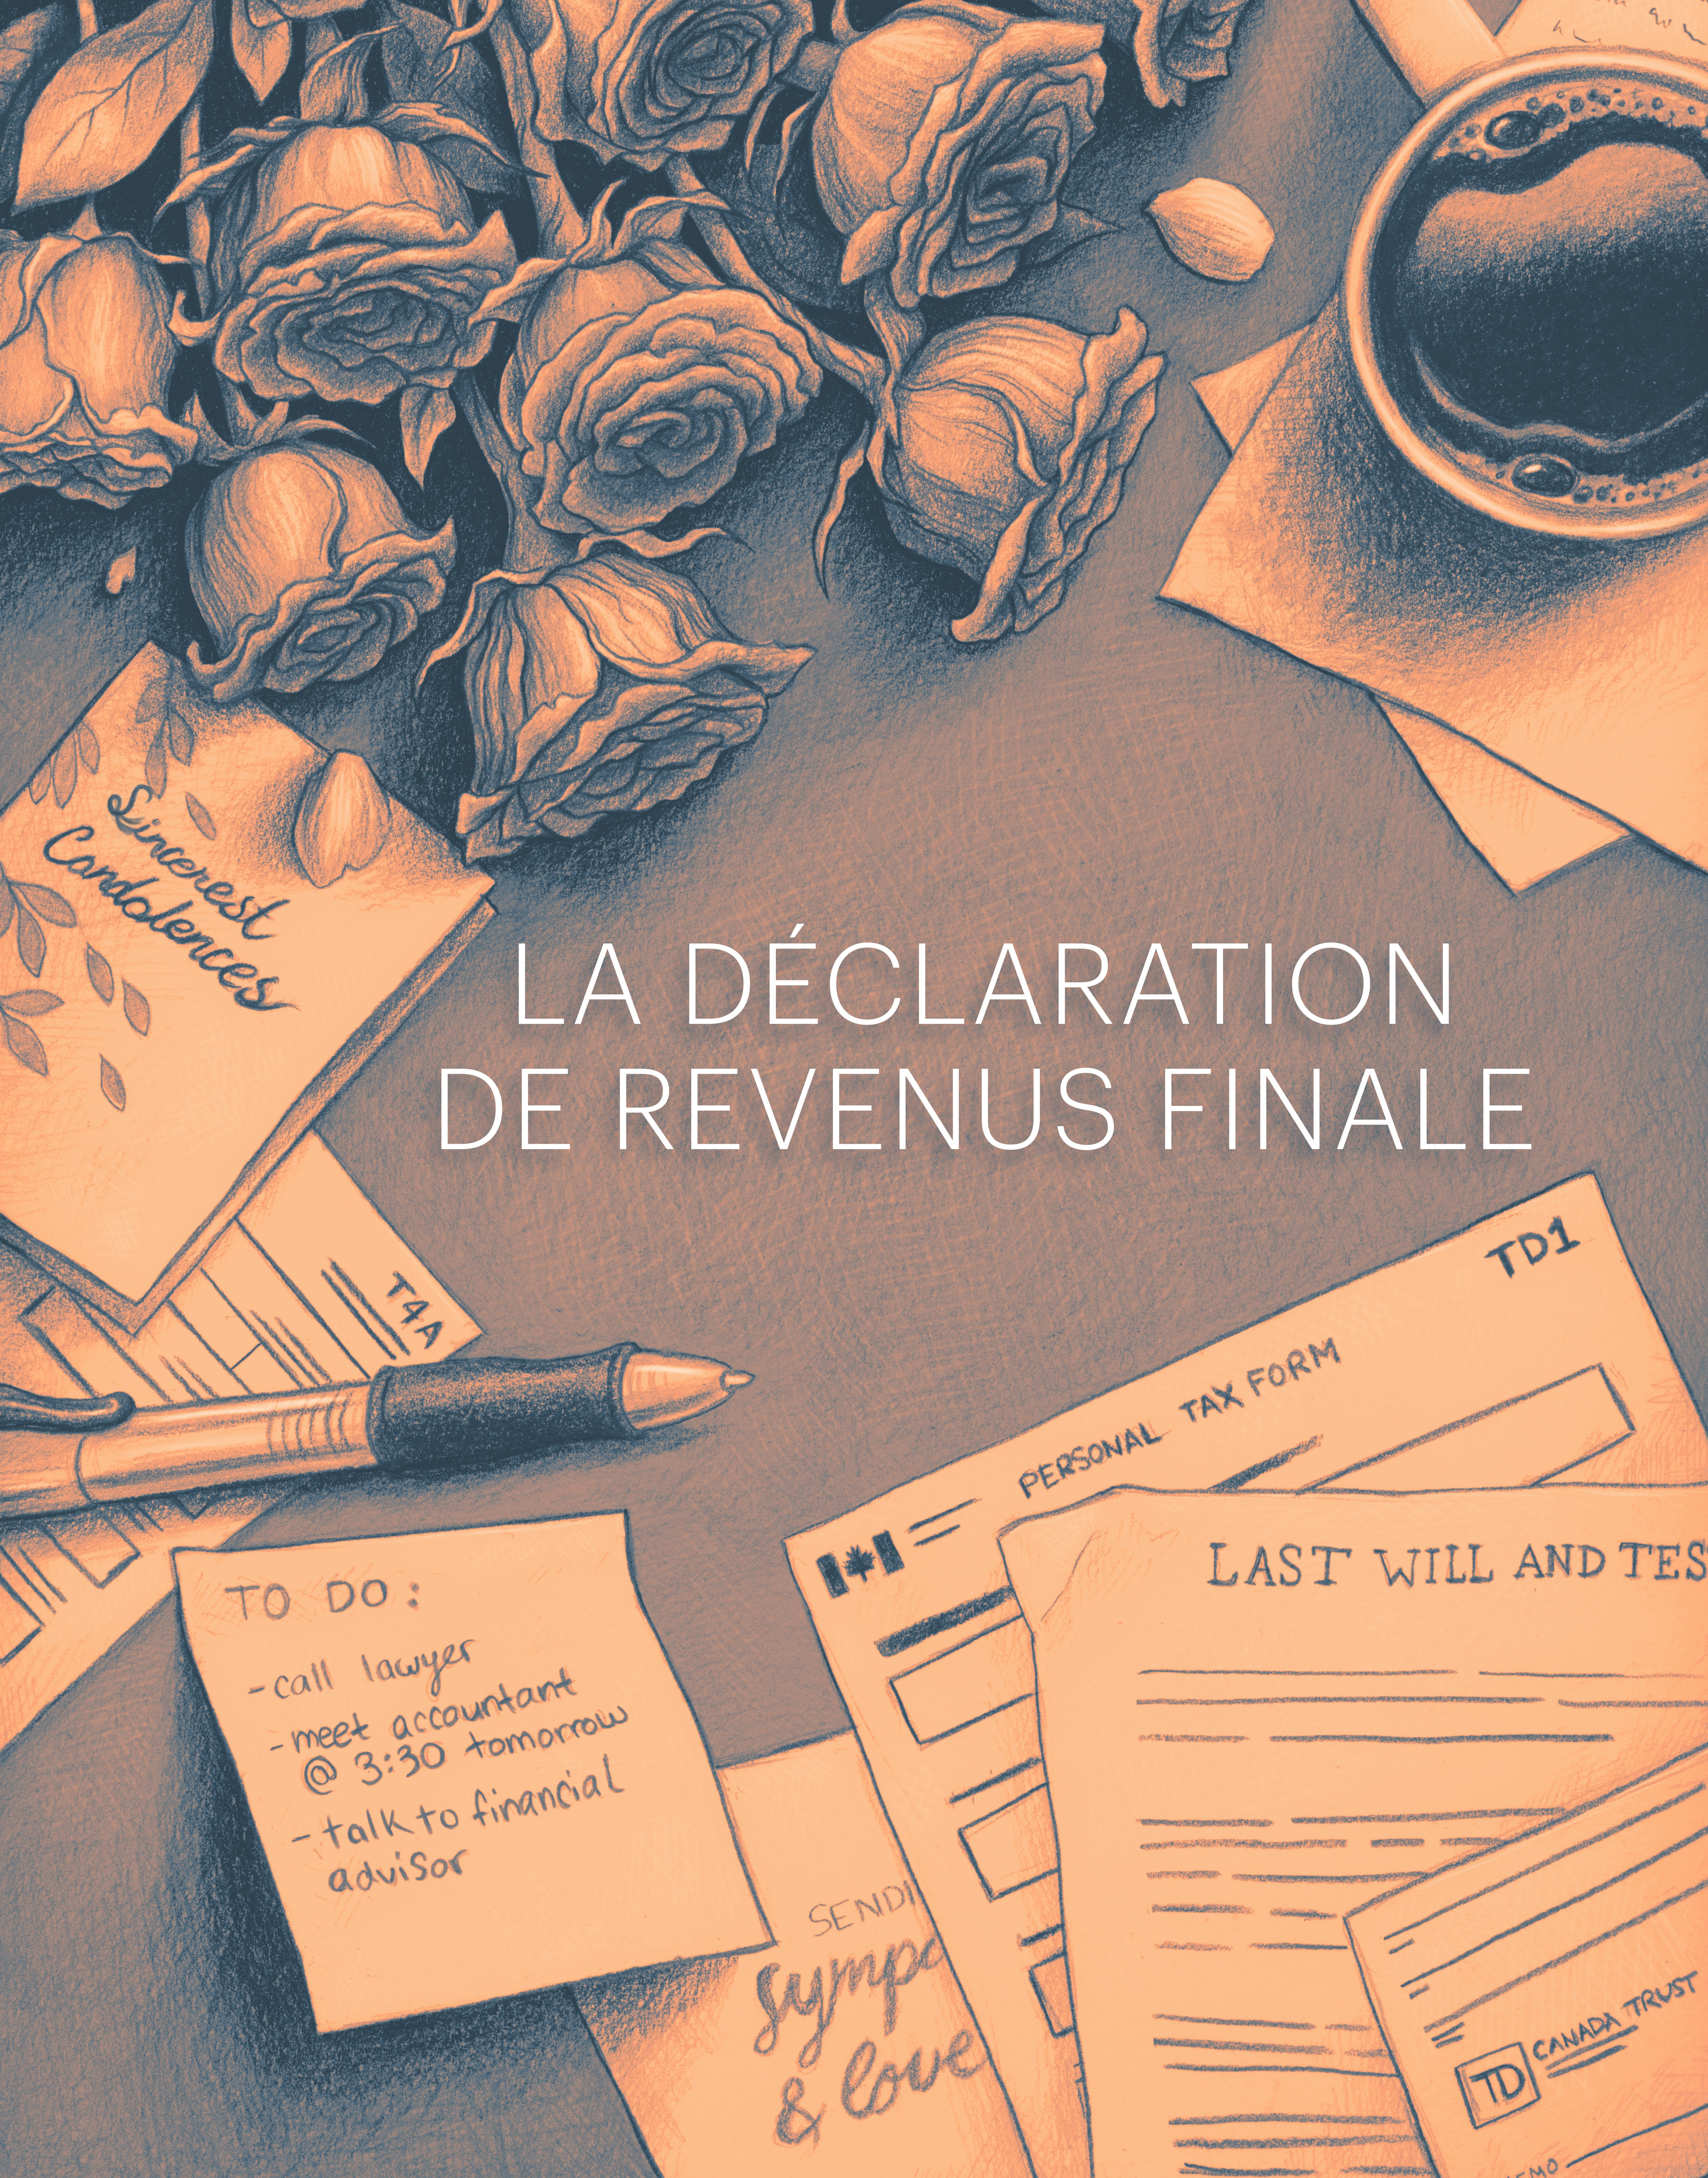 Illustration of forms and letters with text overlay la declaration de revenus finale